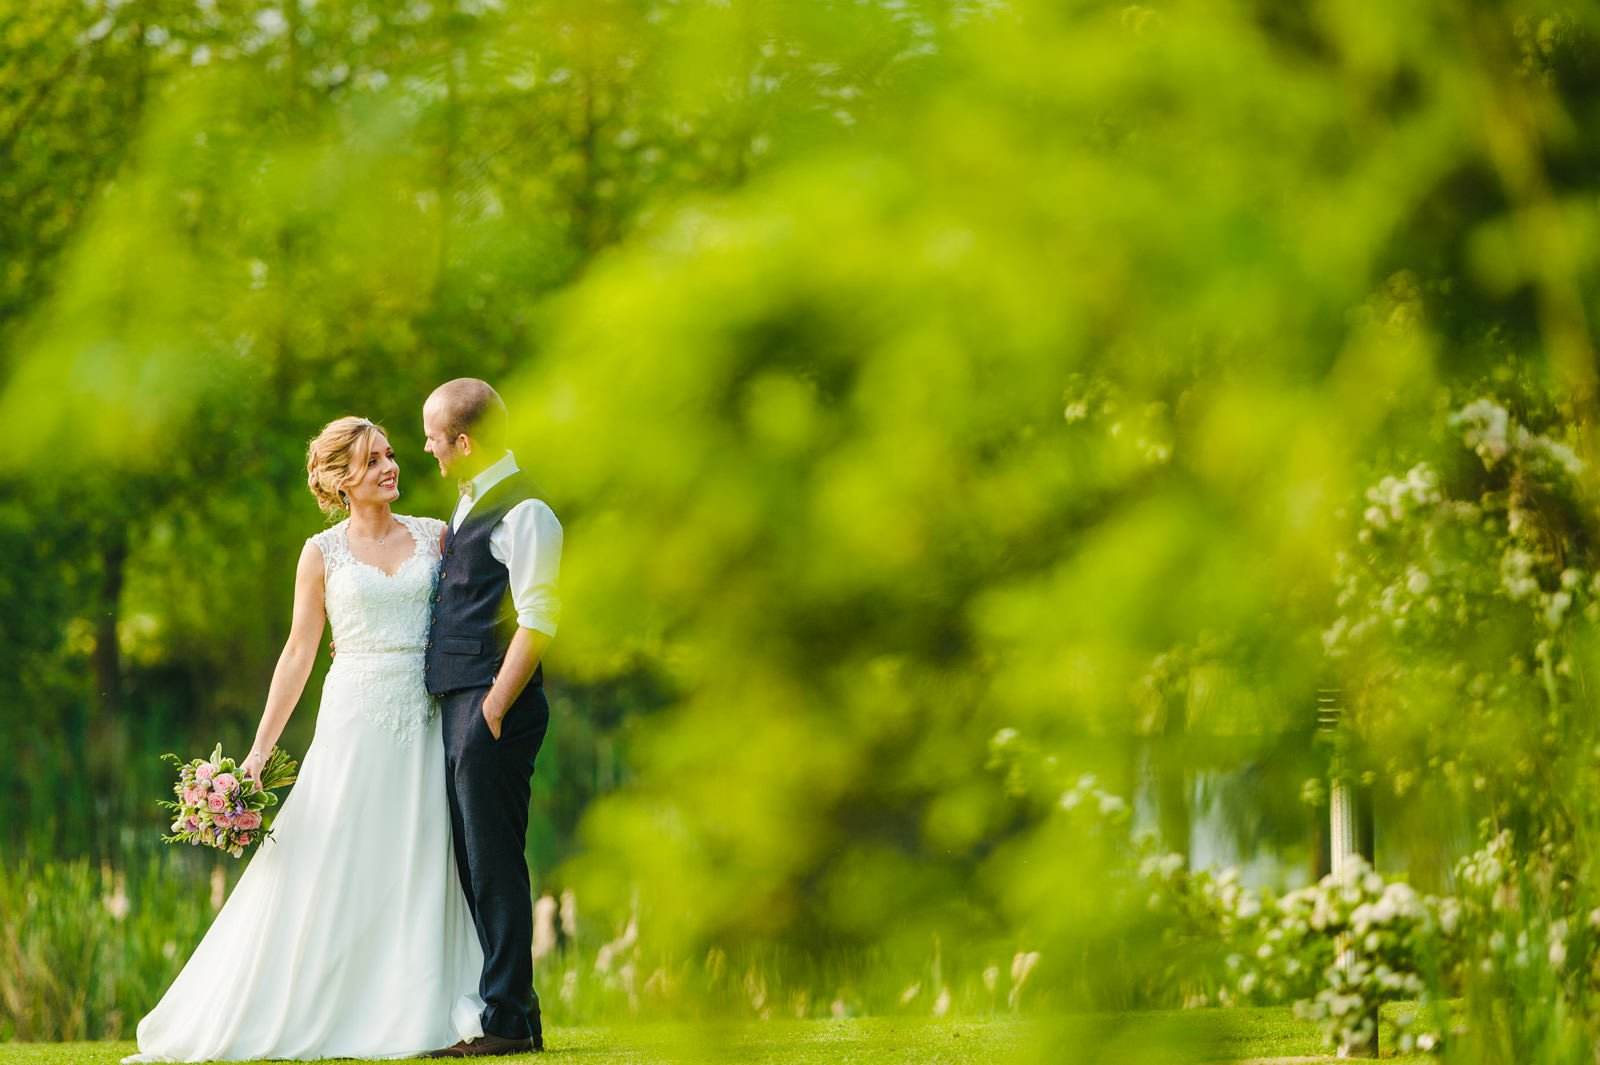 millers of netley wedding 101 - Millers Of Netley wedding, Dorrington, Shrewsbury | Emma + Ben